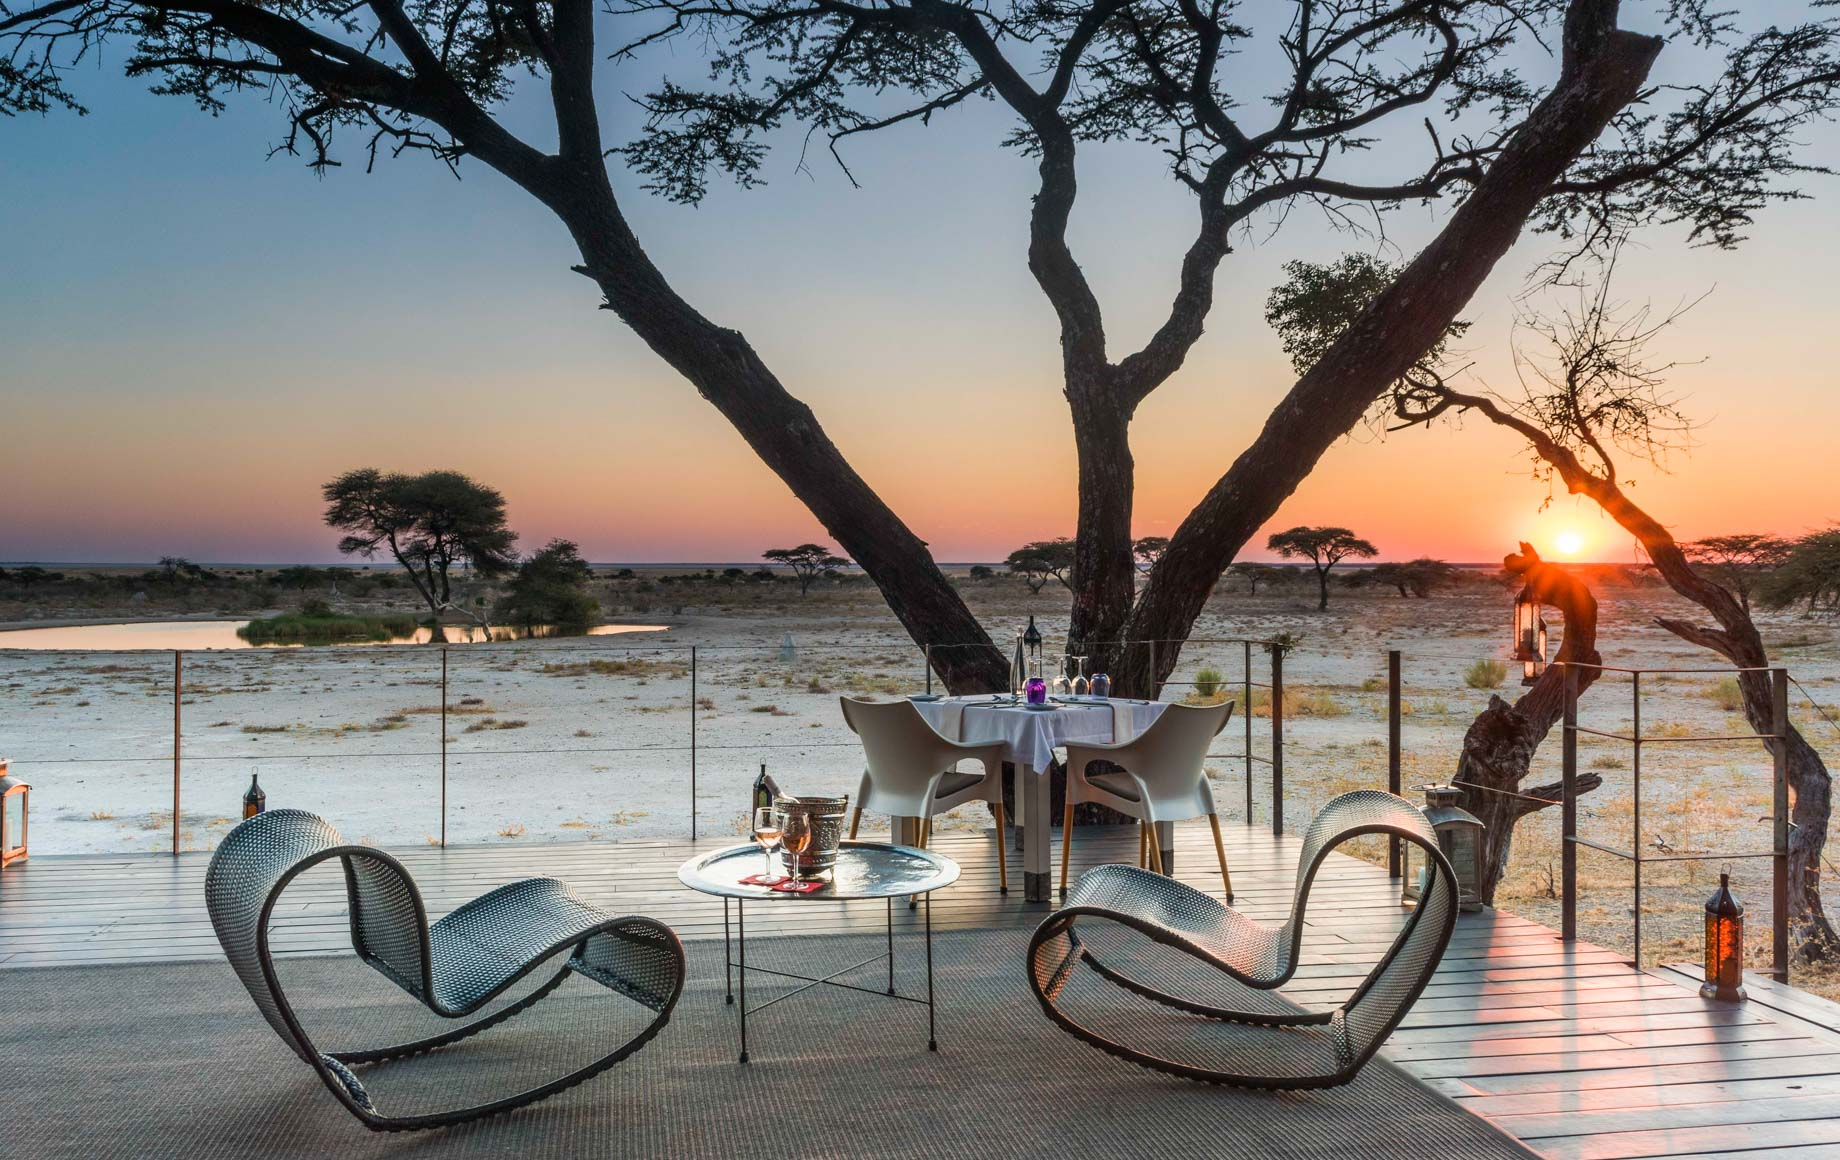 Chairs and table overlook Africa plains